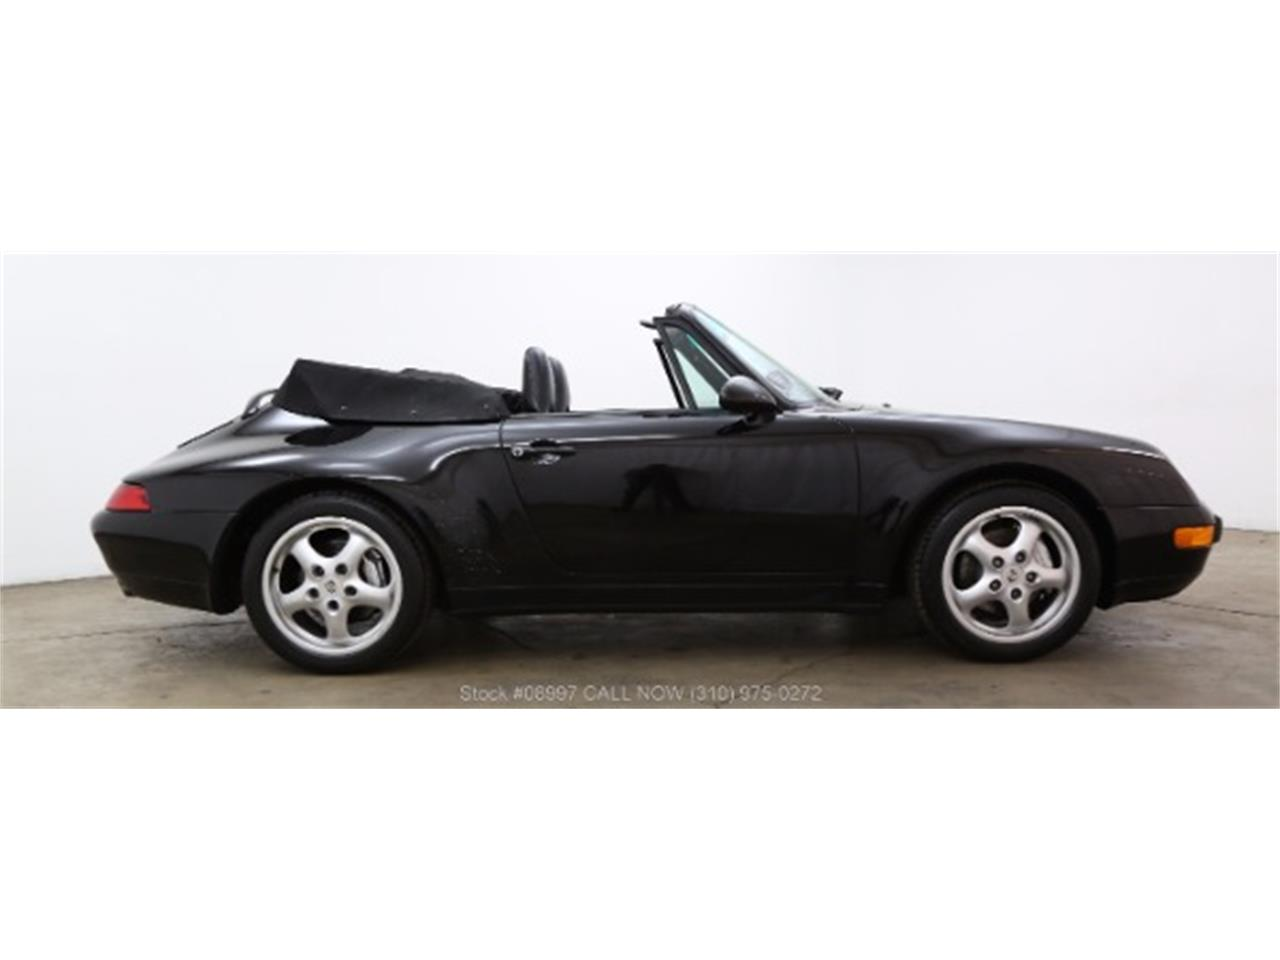 Large Picture of '95 993 located in California - $46,500.00 - MCNT